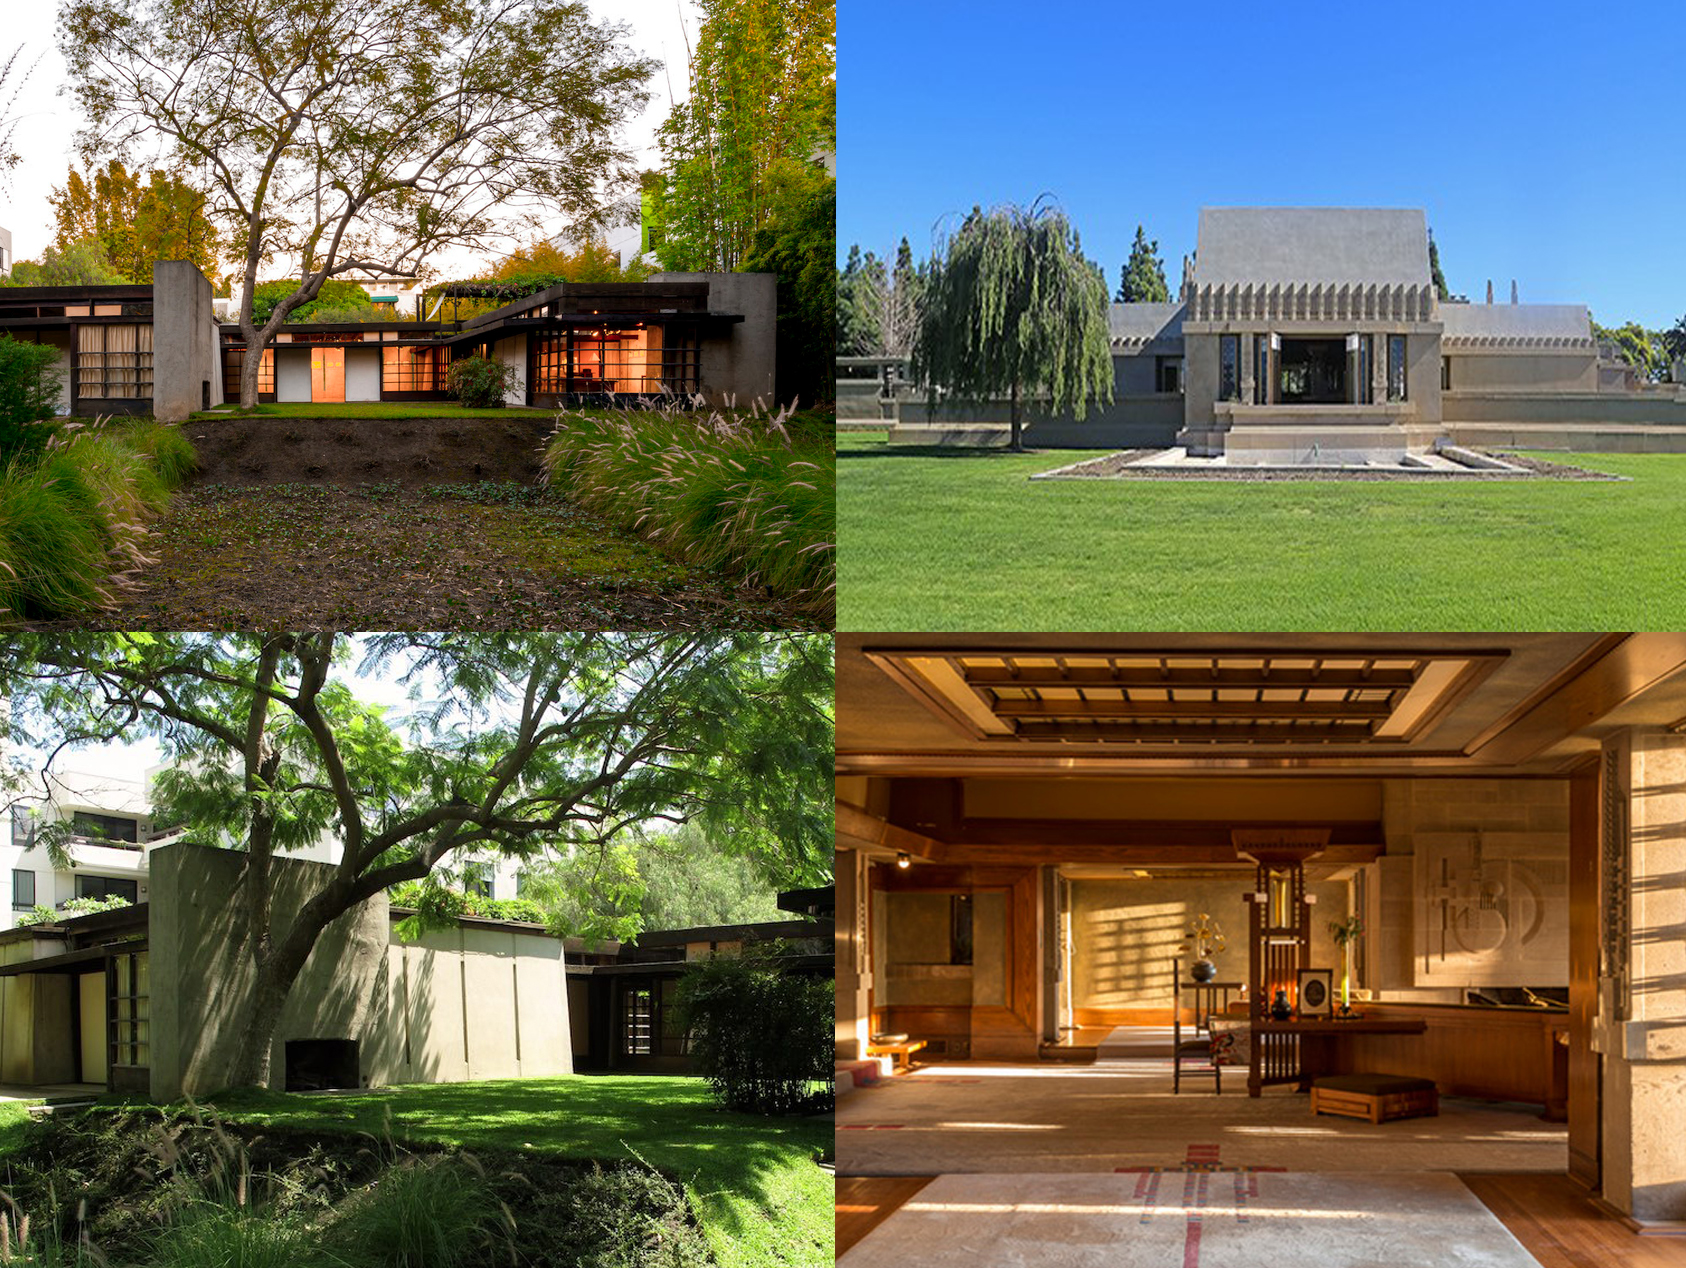 AD Classics •   Kings Road House Photo  : ©Joshua White  AD Classics •   Kings Road House Photo  : ©Flickr John Zacherle   Architectural Digest   • Photo Courtesy of Hollyhock House KCET     Behind the Scenes of the Hollyhock House   • Photo: Courtesy of Barnsdall Art Park